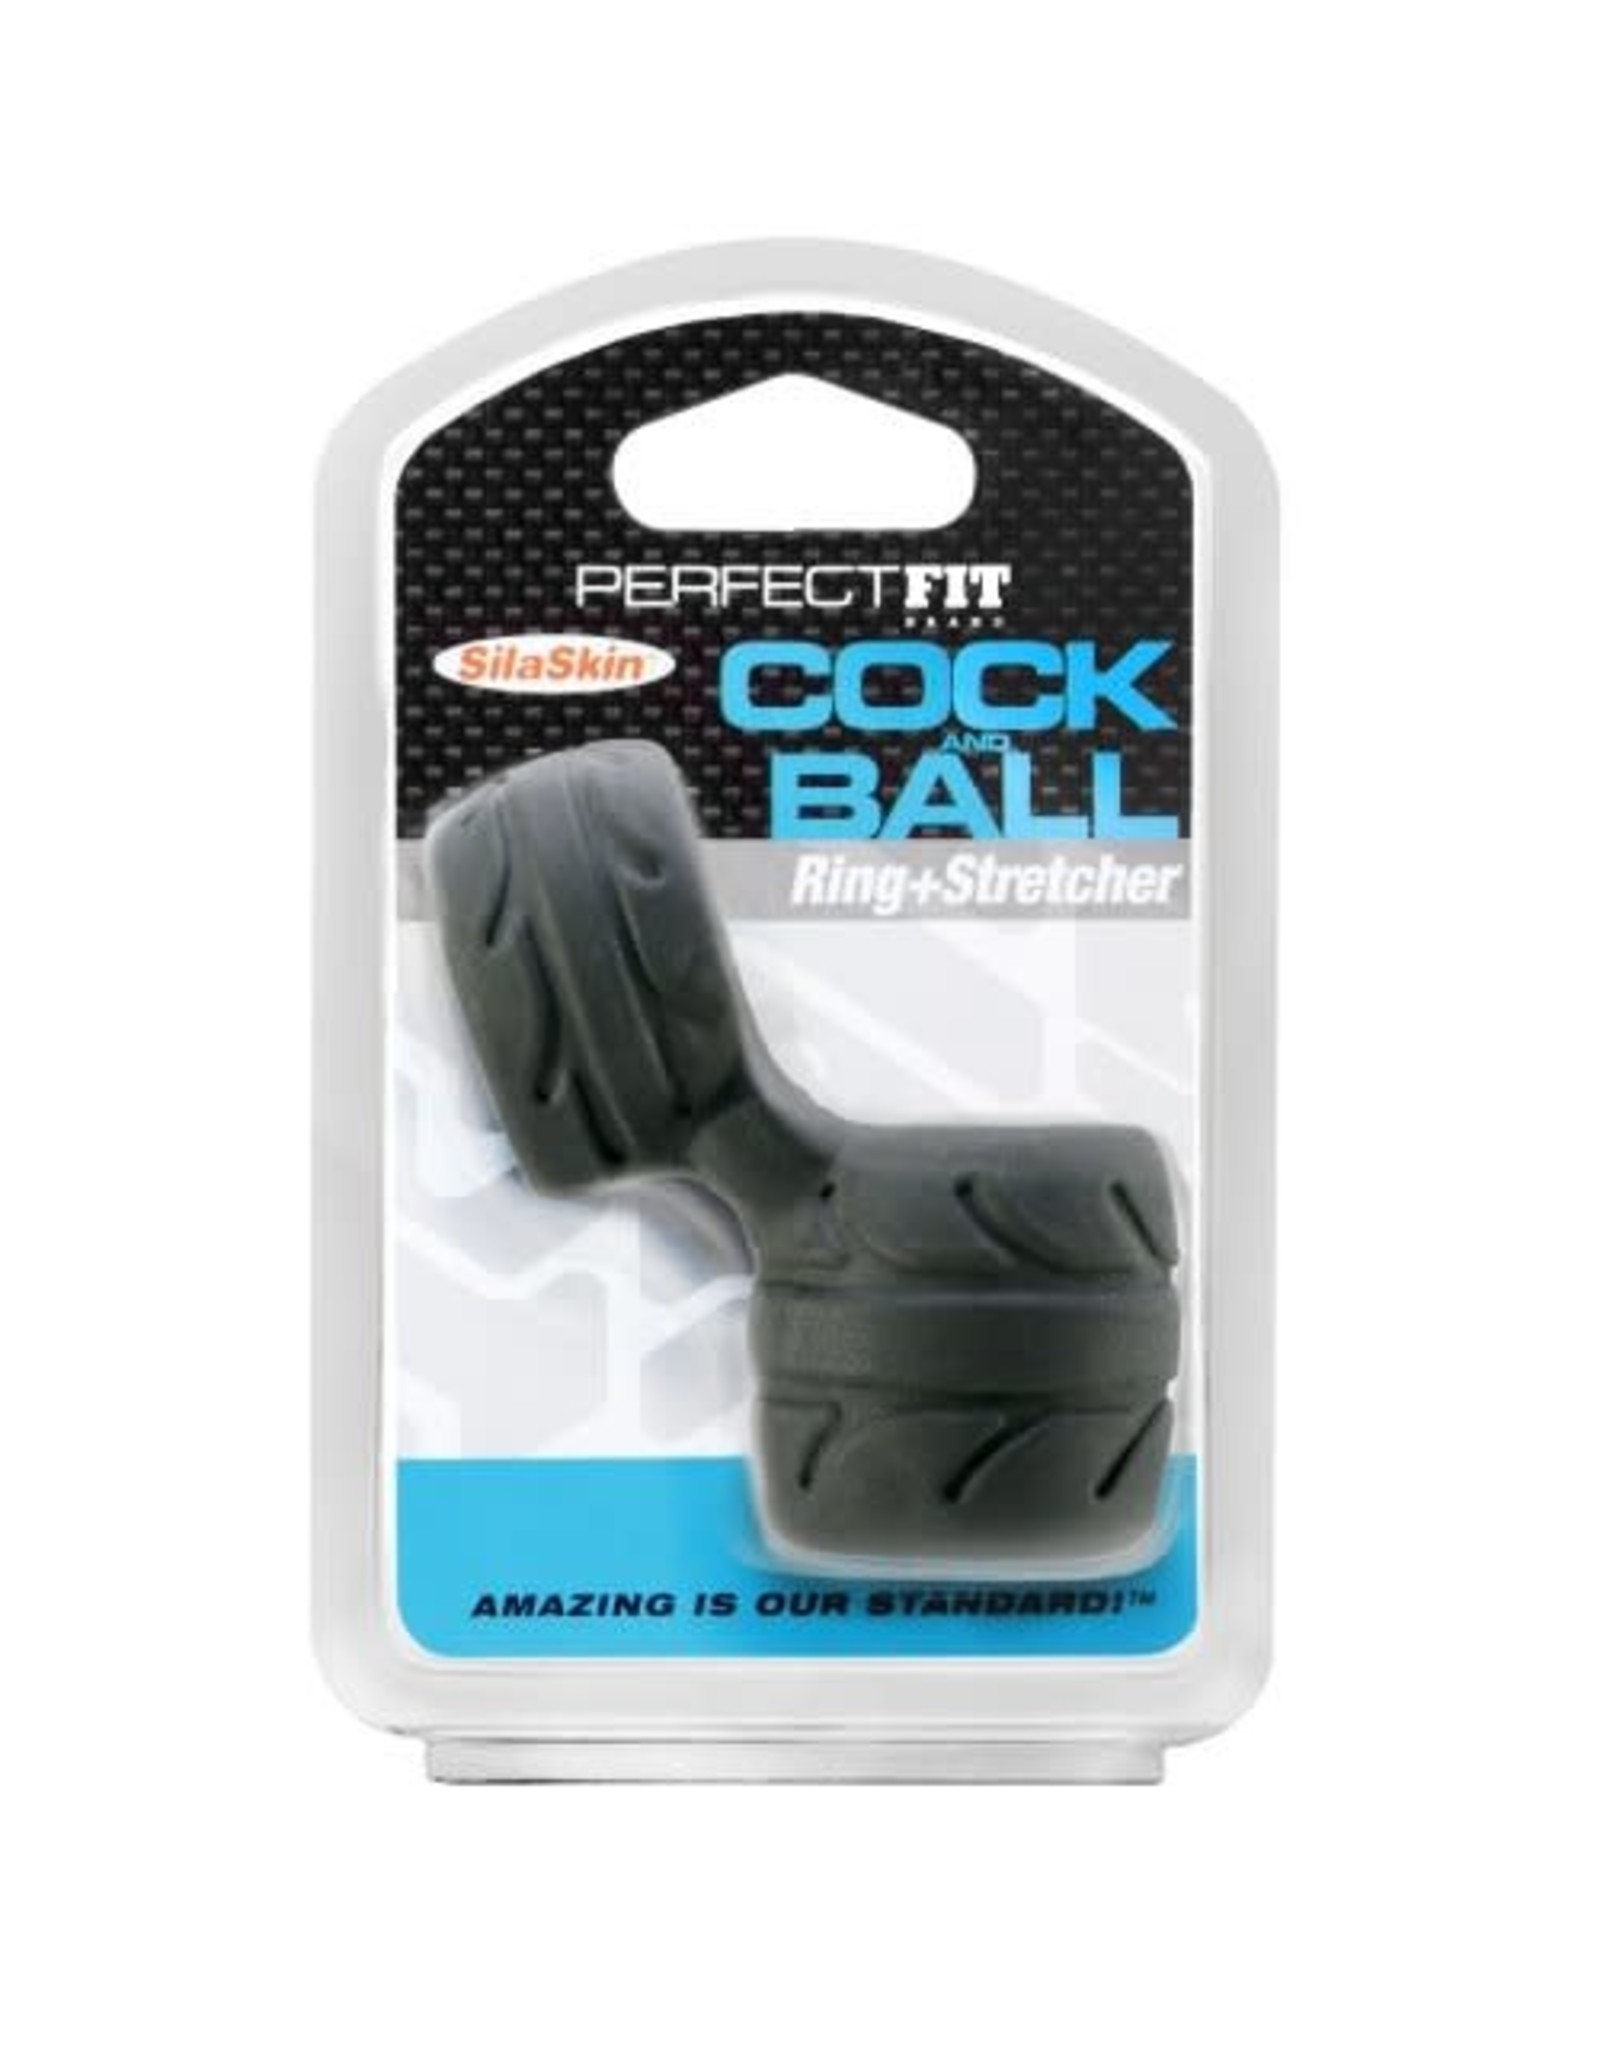 Perfect Fit Brand Perfect Fit Brand SilaSkin Cock & Ball Black